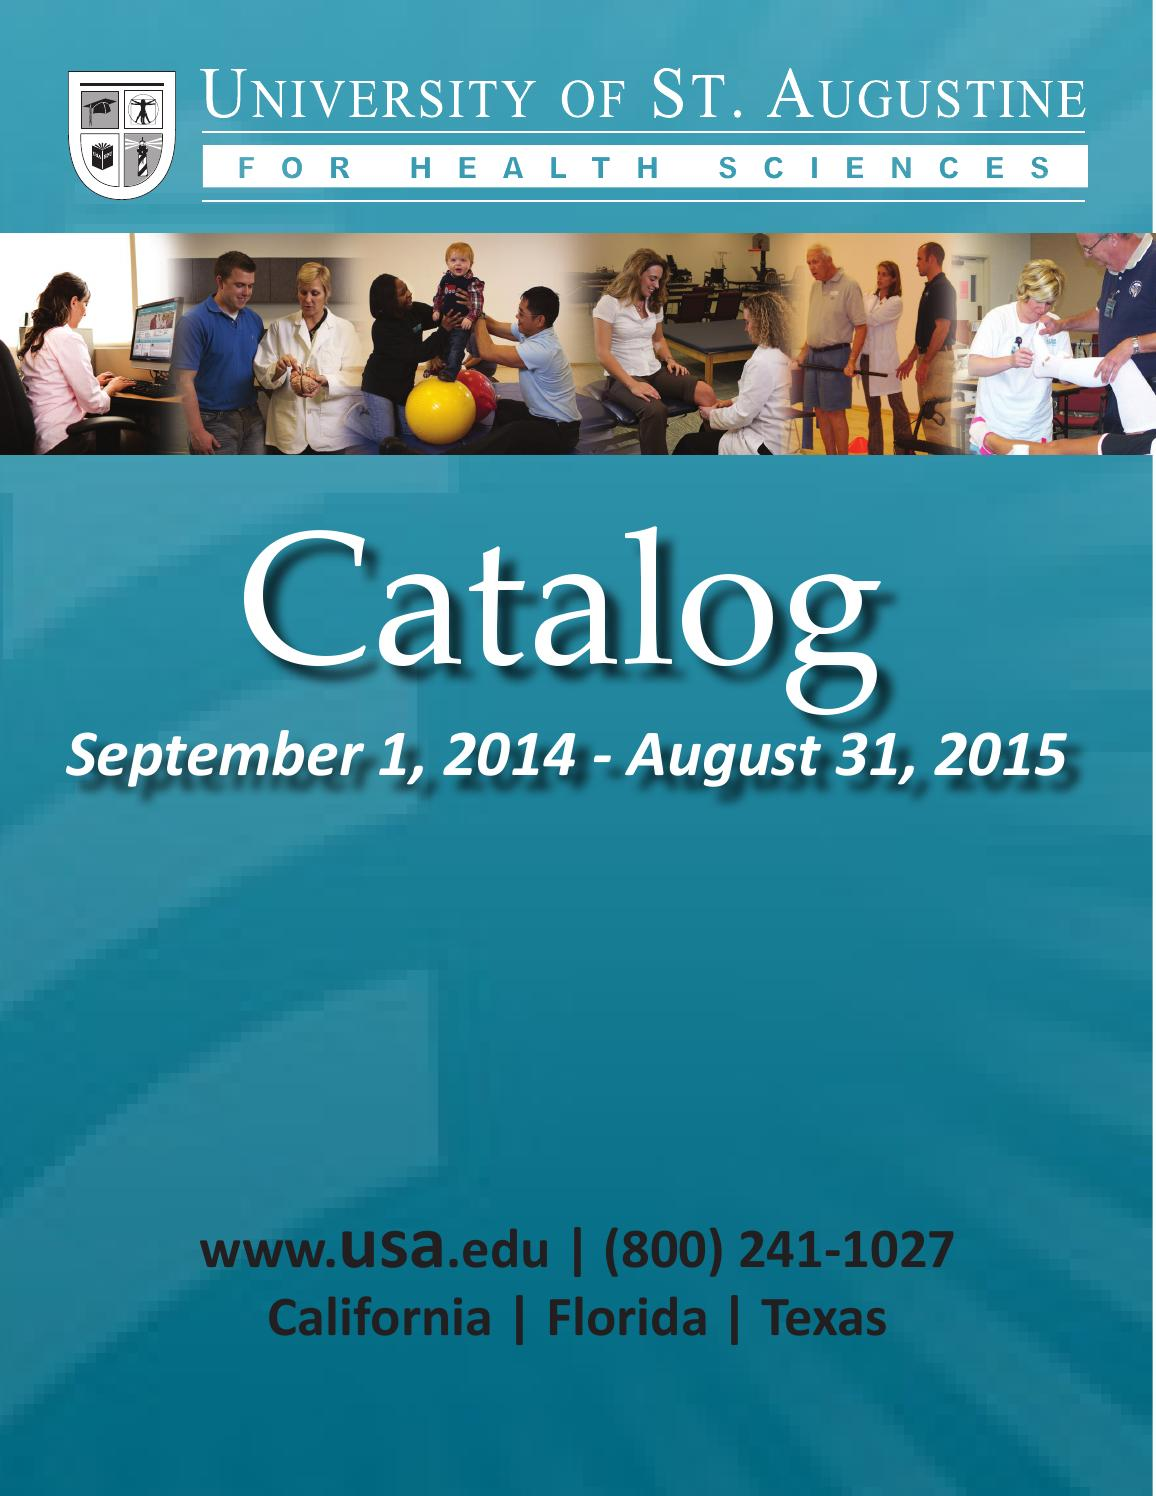 University of st augustine catalog 2014 2015 updated may 2015 by university of st augustine catalog 2014 2015 updated may 2015 by university of st augustine issuu fandeluxe Choice Image